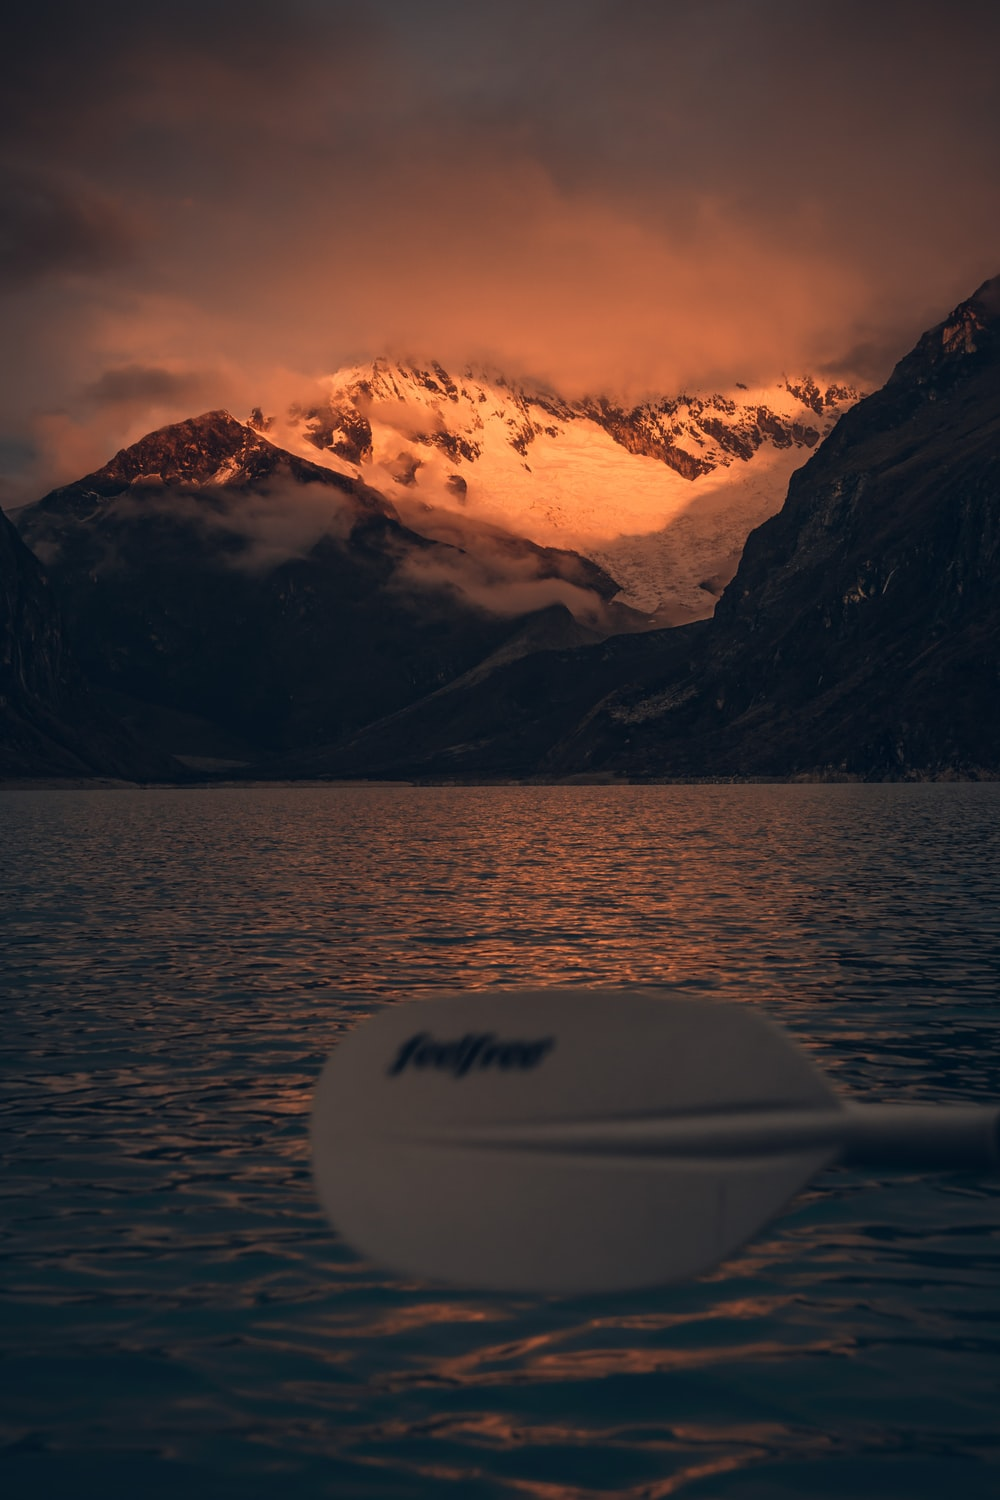 white surfboard on body of water near snow covered mountain during daytime